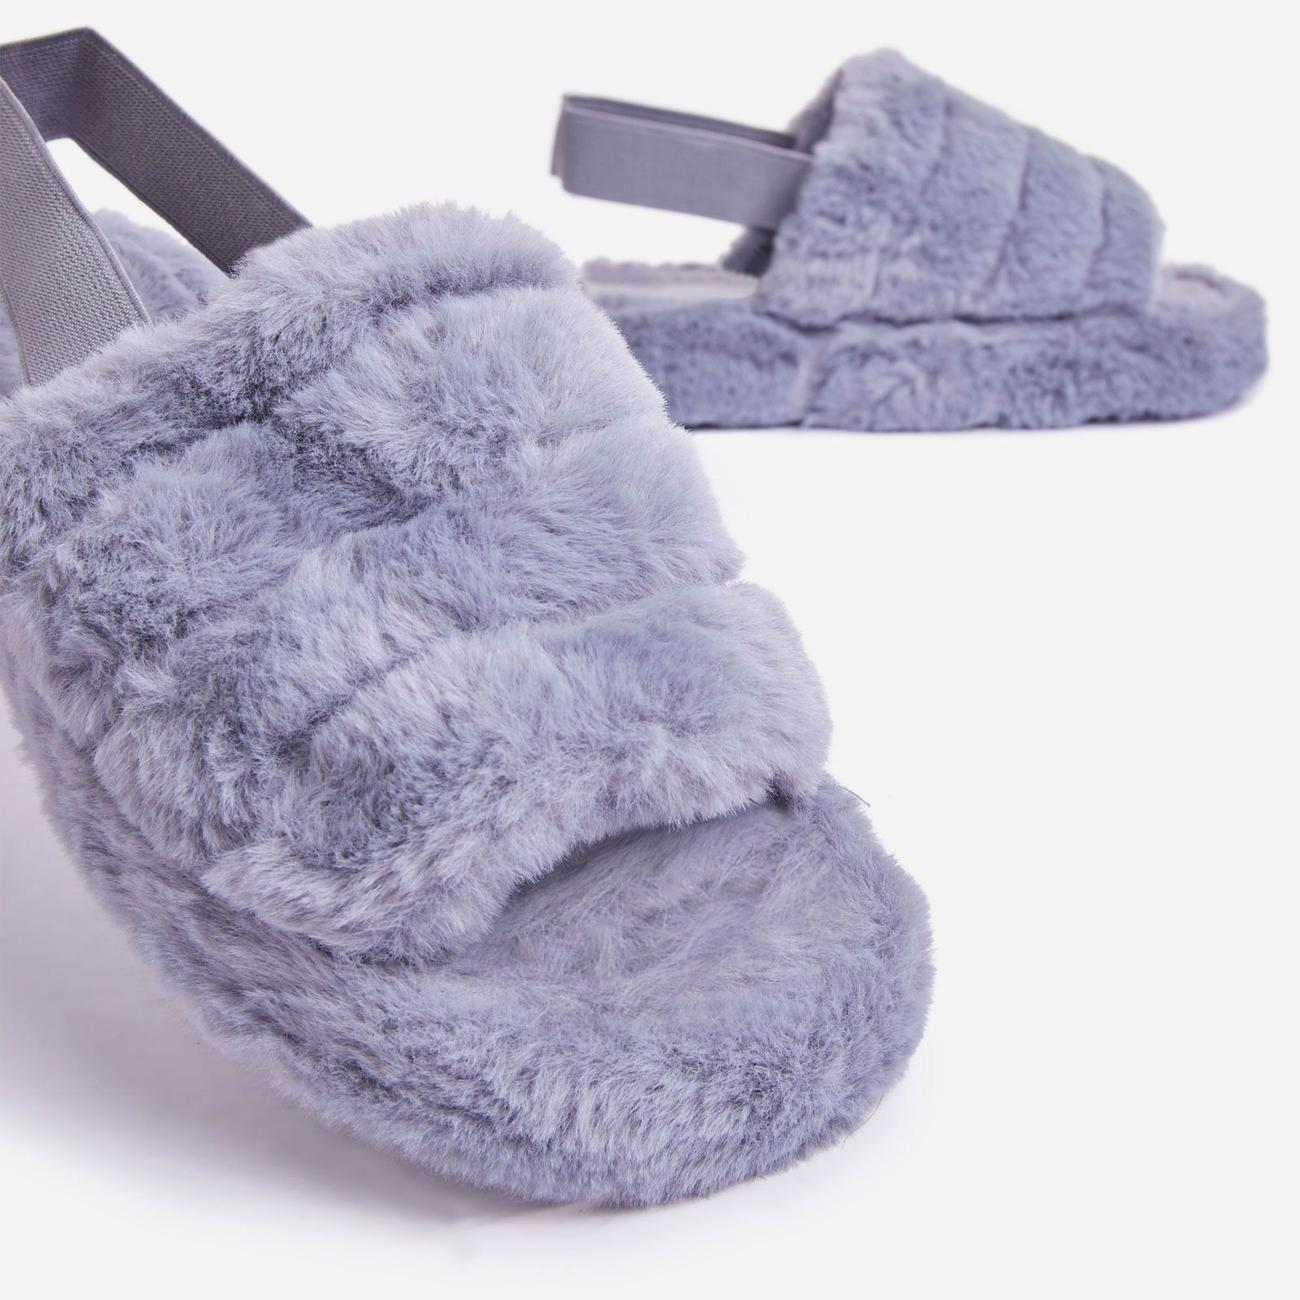 Boo Fluffy Stripe Slipper In Grey Faux Fur Image 4